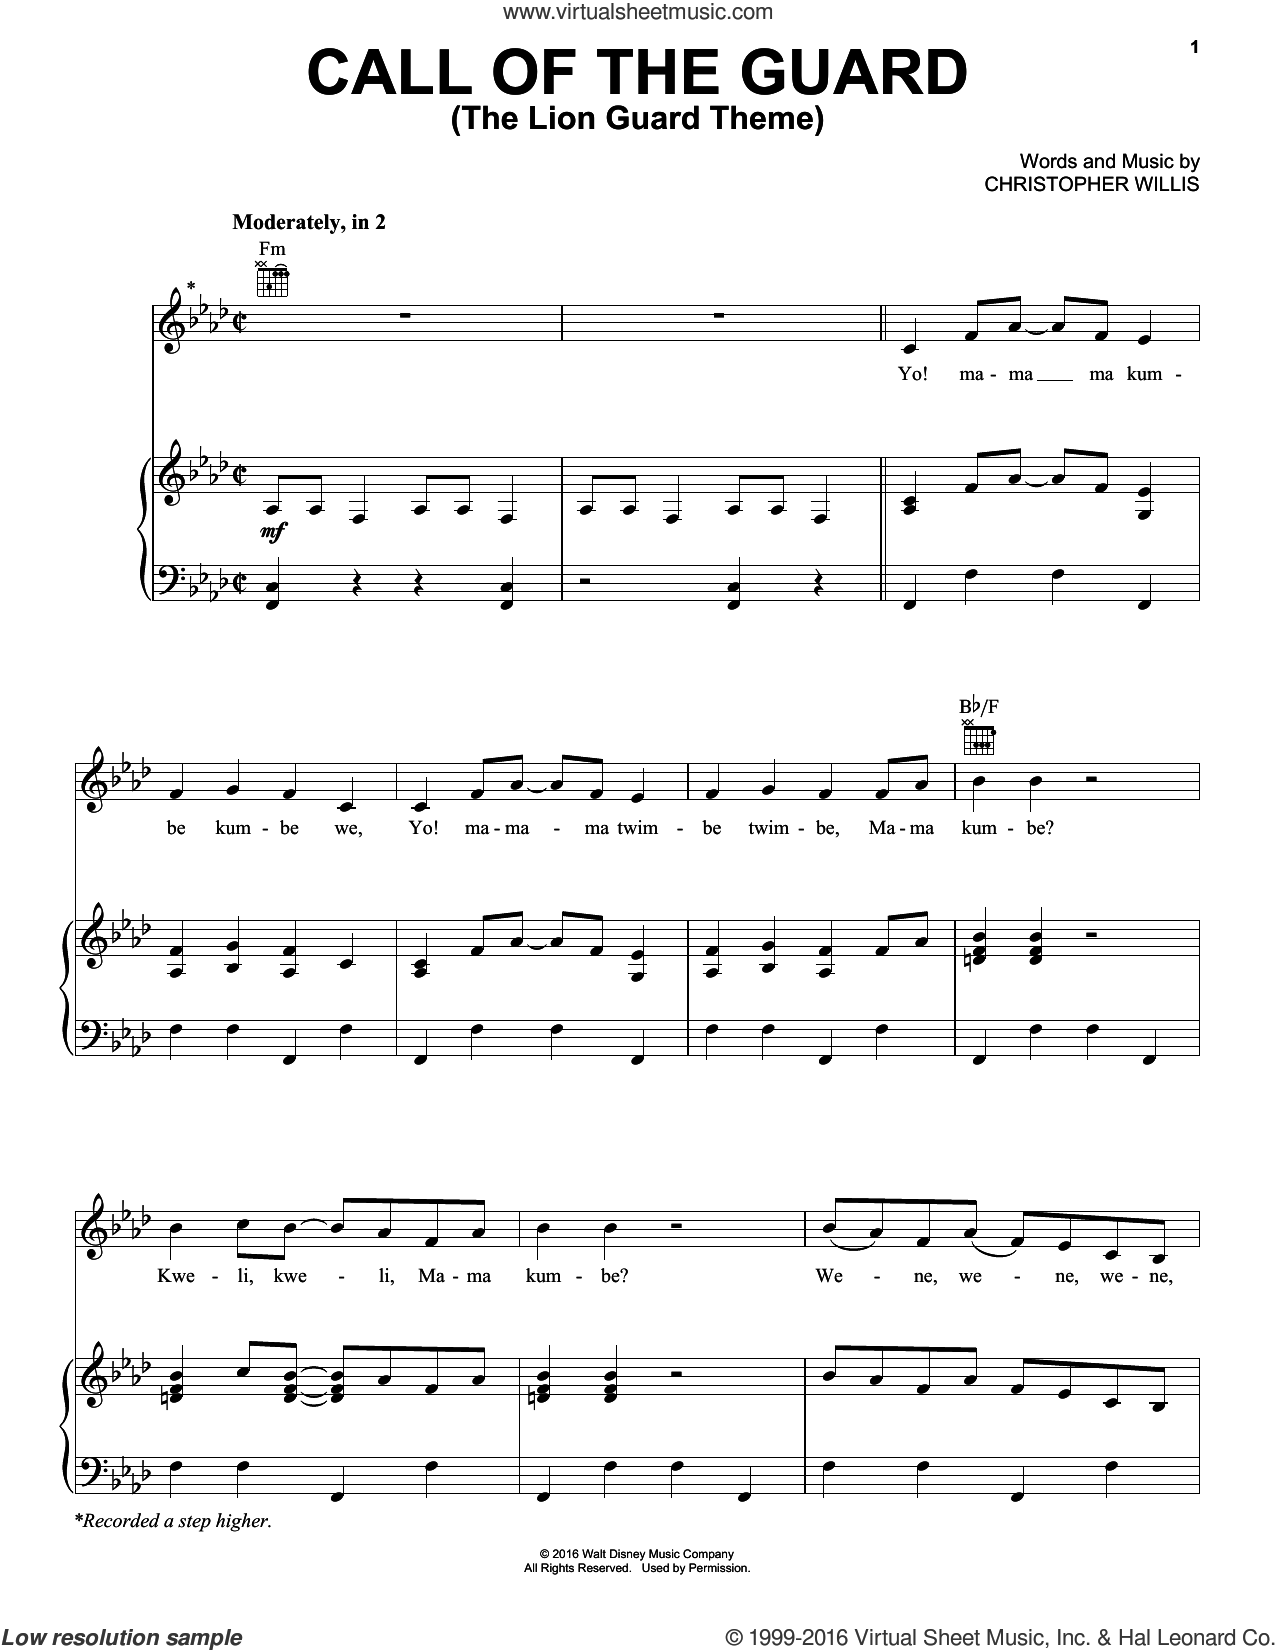 Call Of The Guard (The Lion Guard Theme) sheet music for voice, piano or guitar by Christopher Willis, intermediate skill level